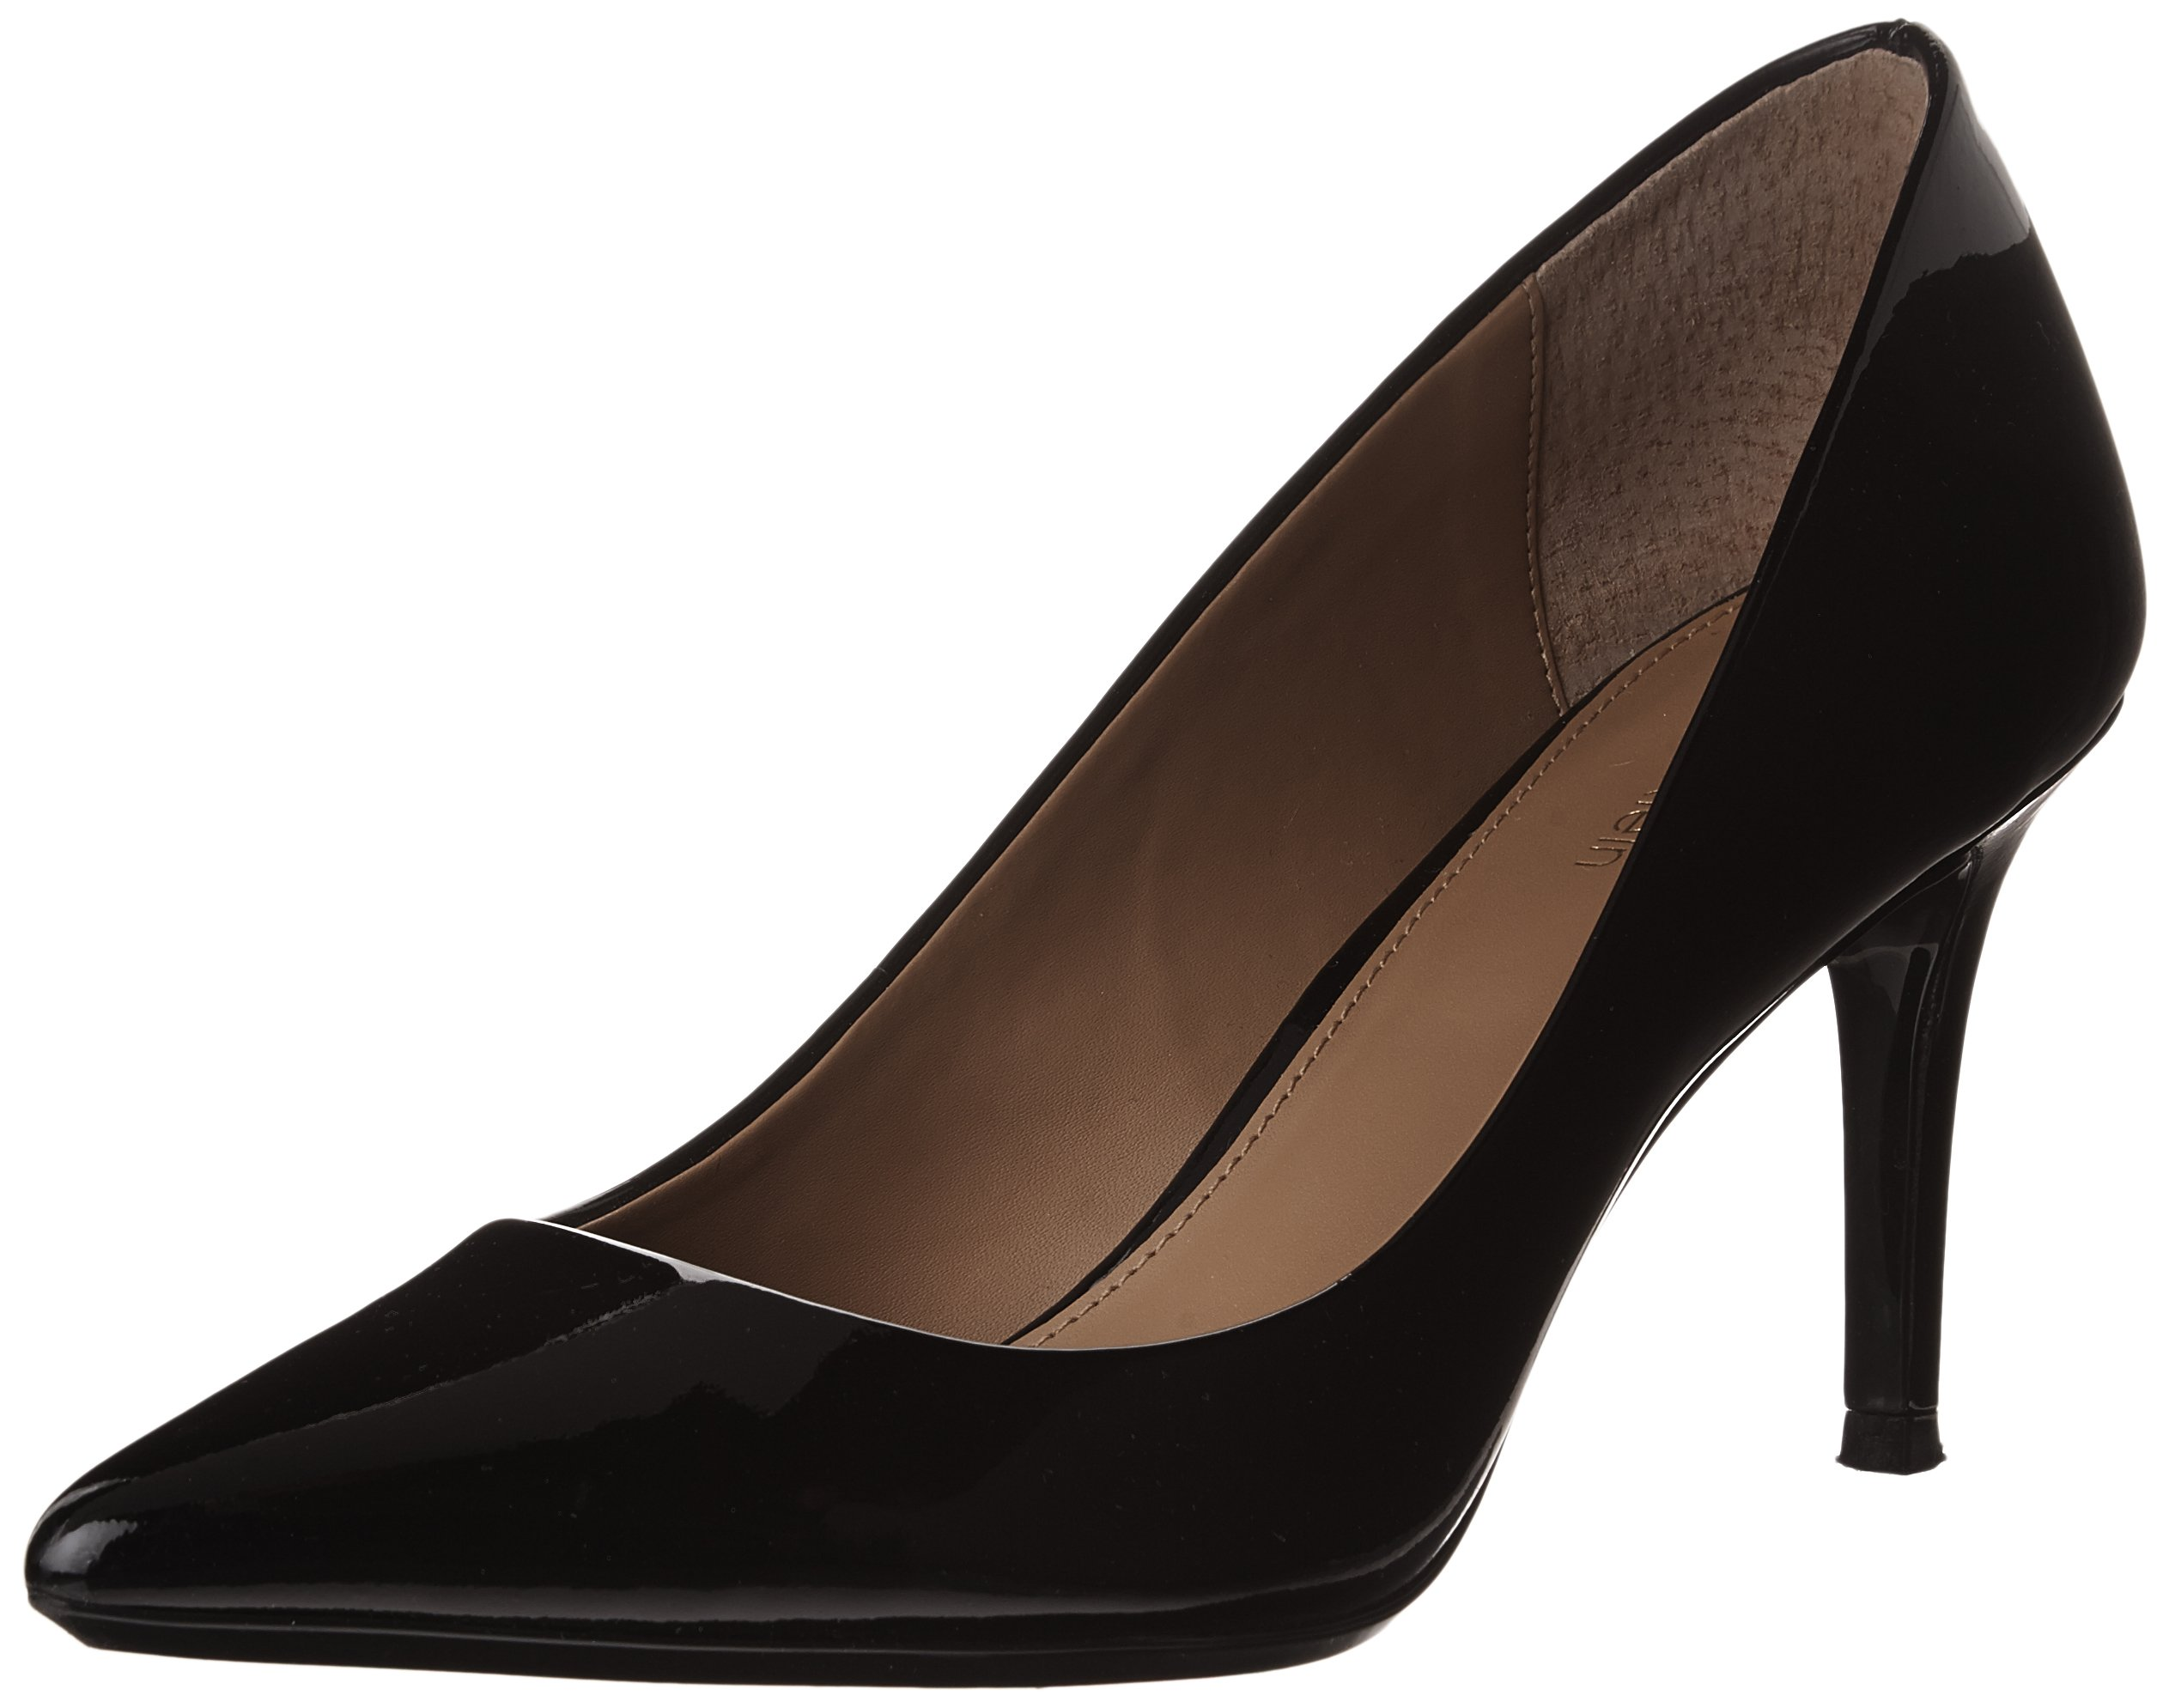 Calvin Klein Women's Gayle  Dress Pump,Black Patent, 7.5 M by Calvin Klein (Image #1)